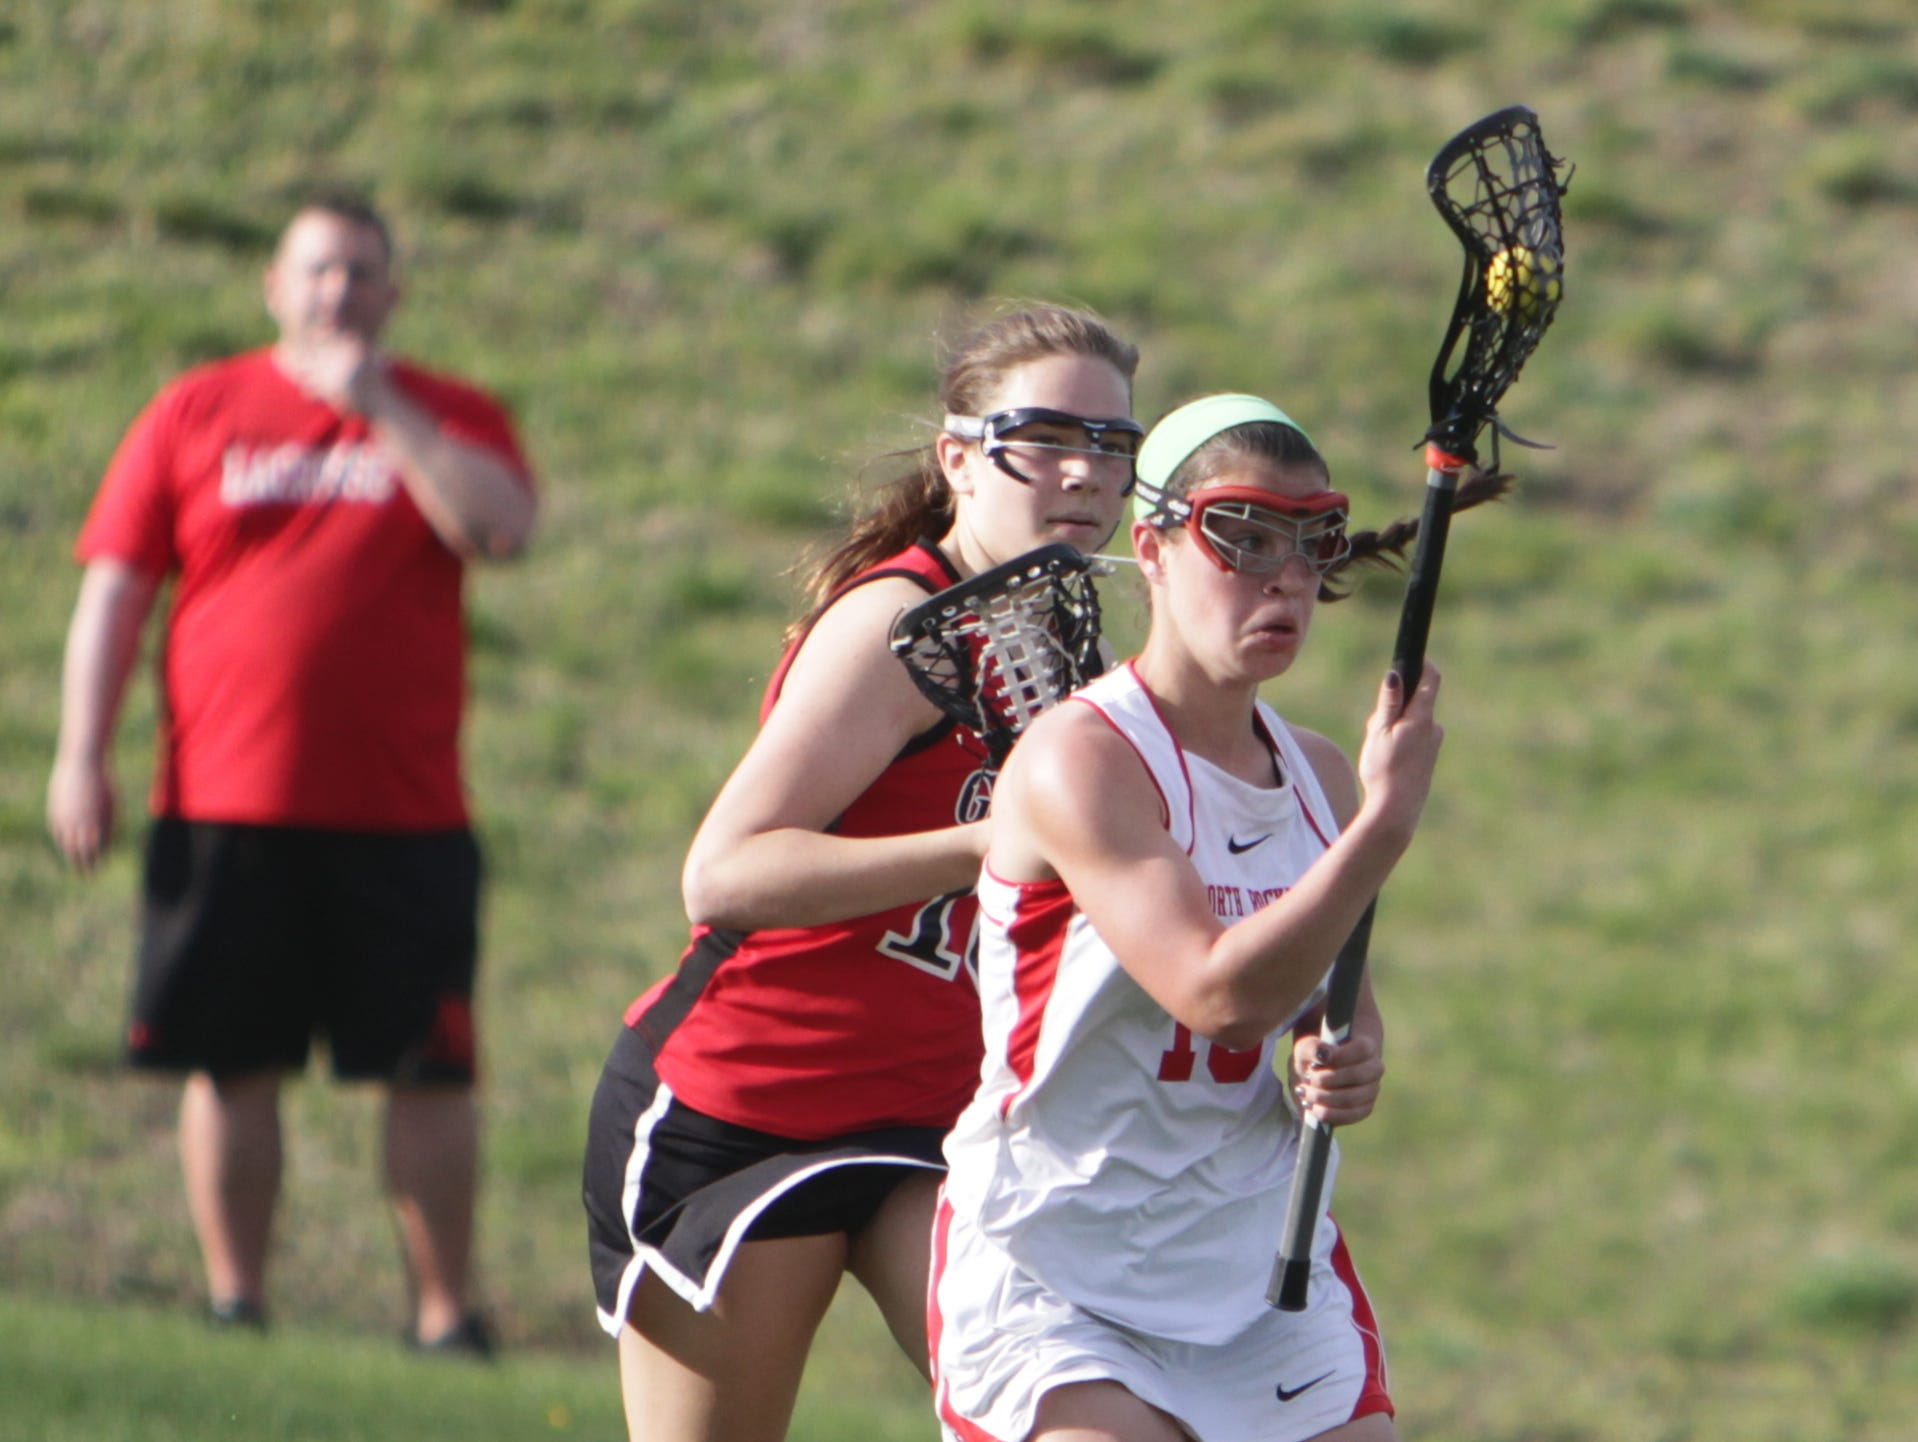 North Rockland's Kerri Gutenberger controls the ball during a Section 1 girls lacrosse game between North Rockland and Rye at North Rockland High School on Monday, April 18th, 2016. North Rockland won 10-5.